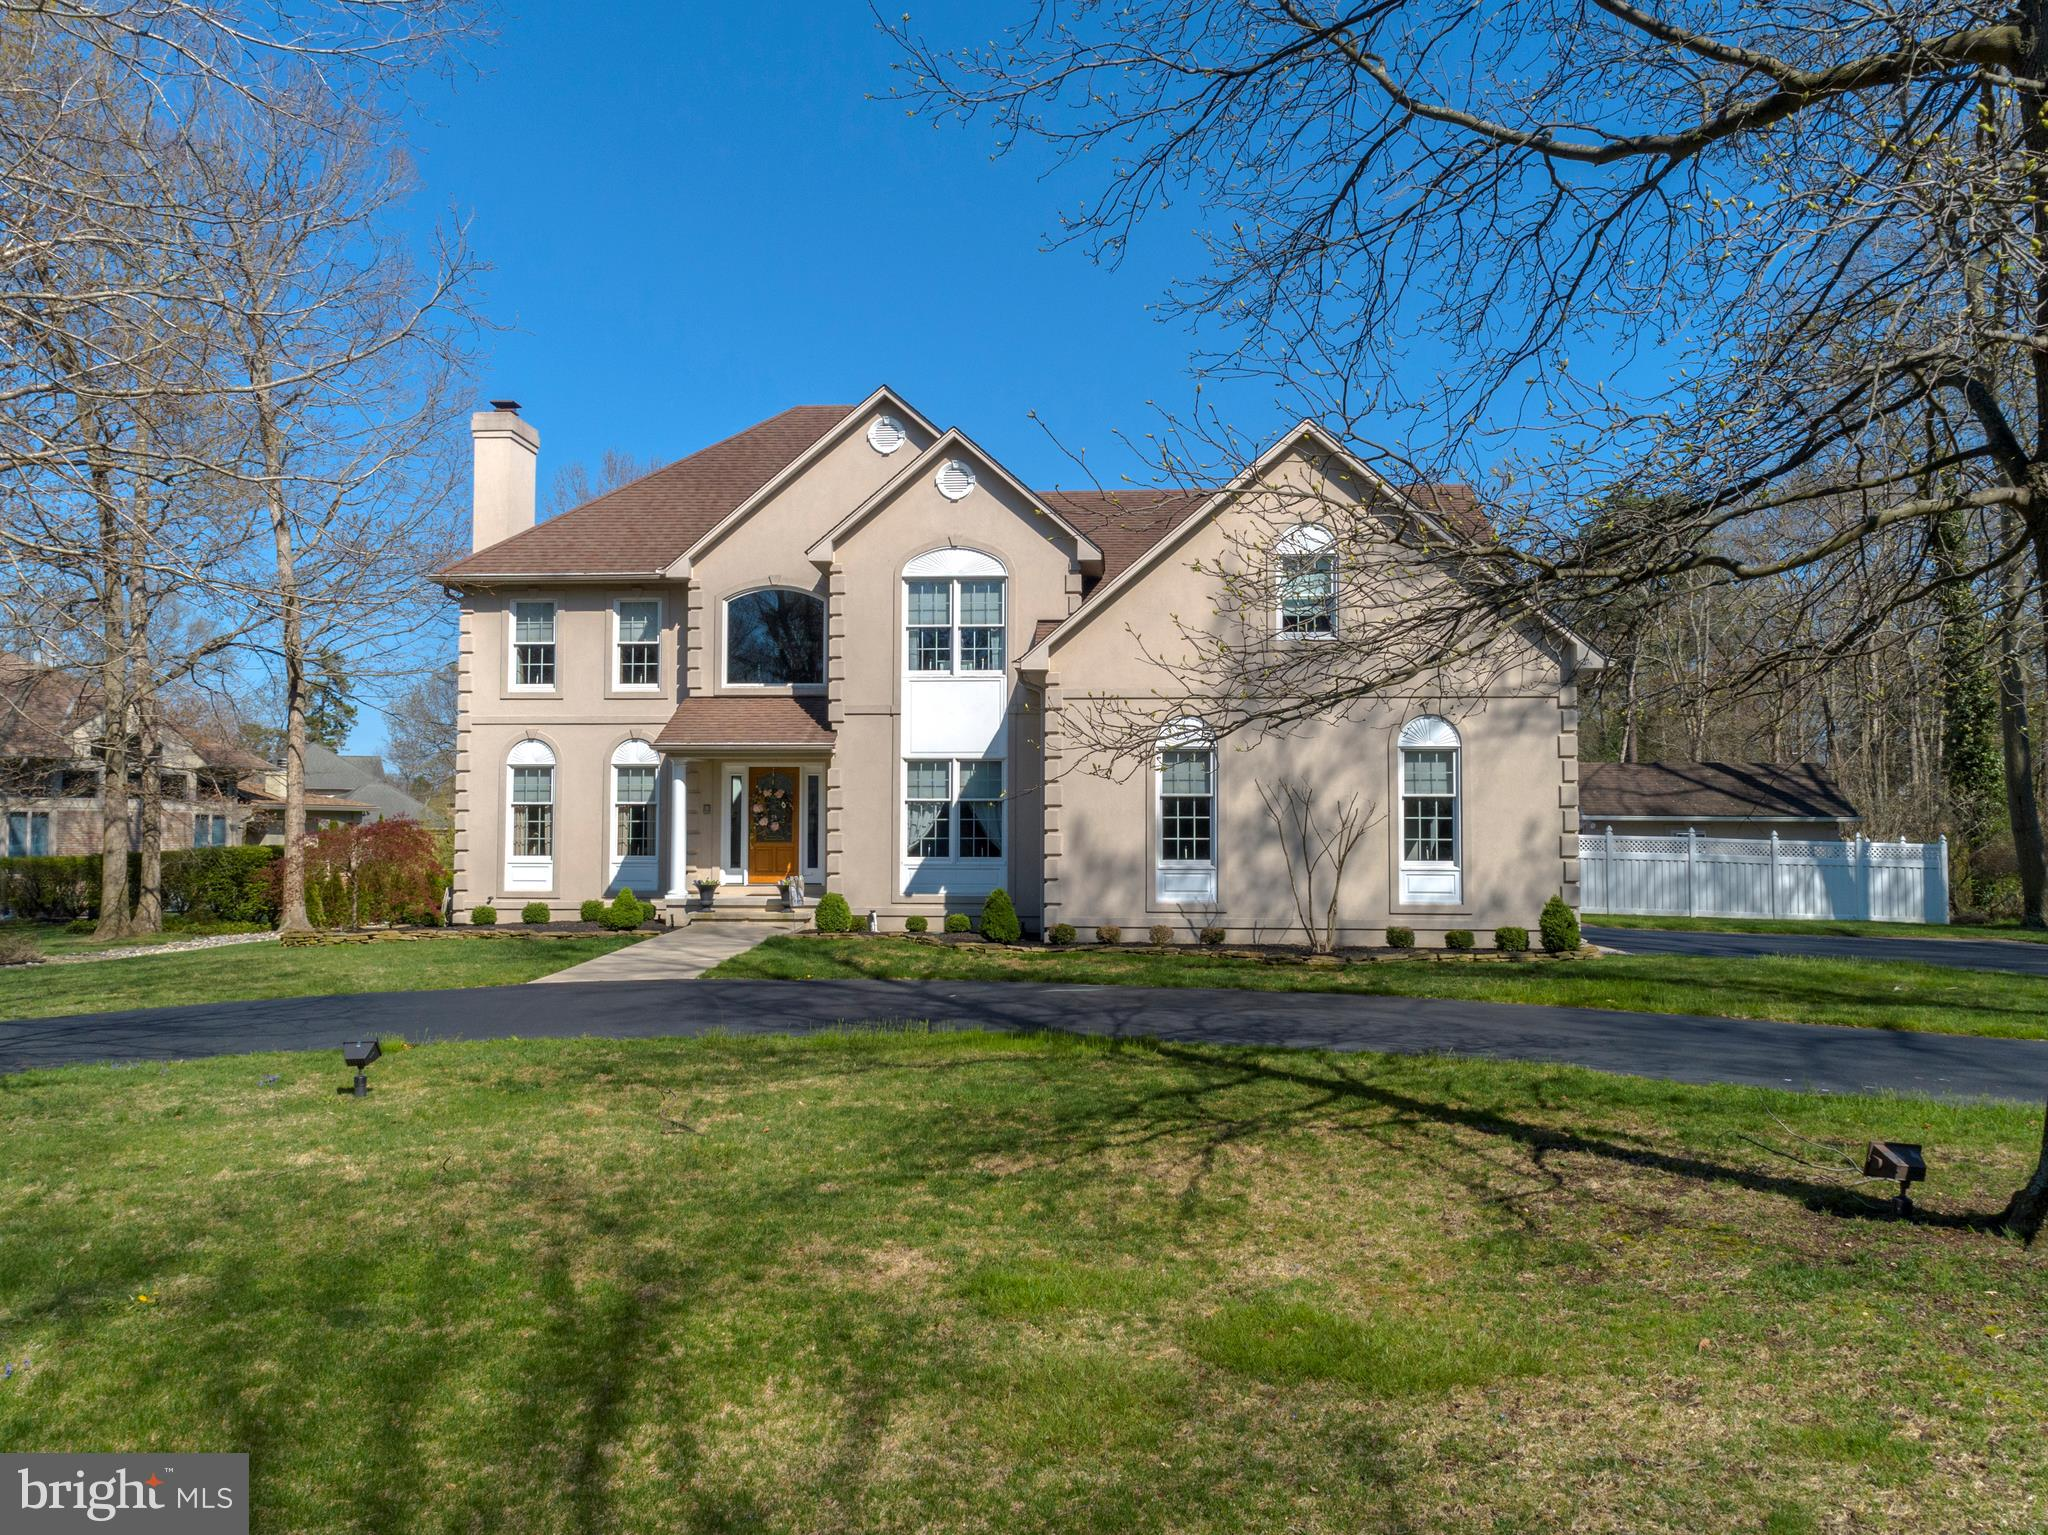 1709 BROOKFIELD, VINELAND, NJ 08360